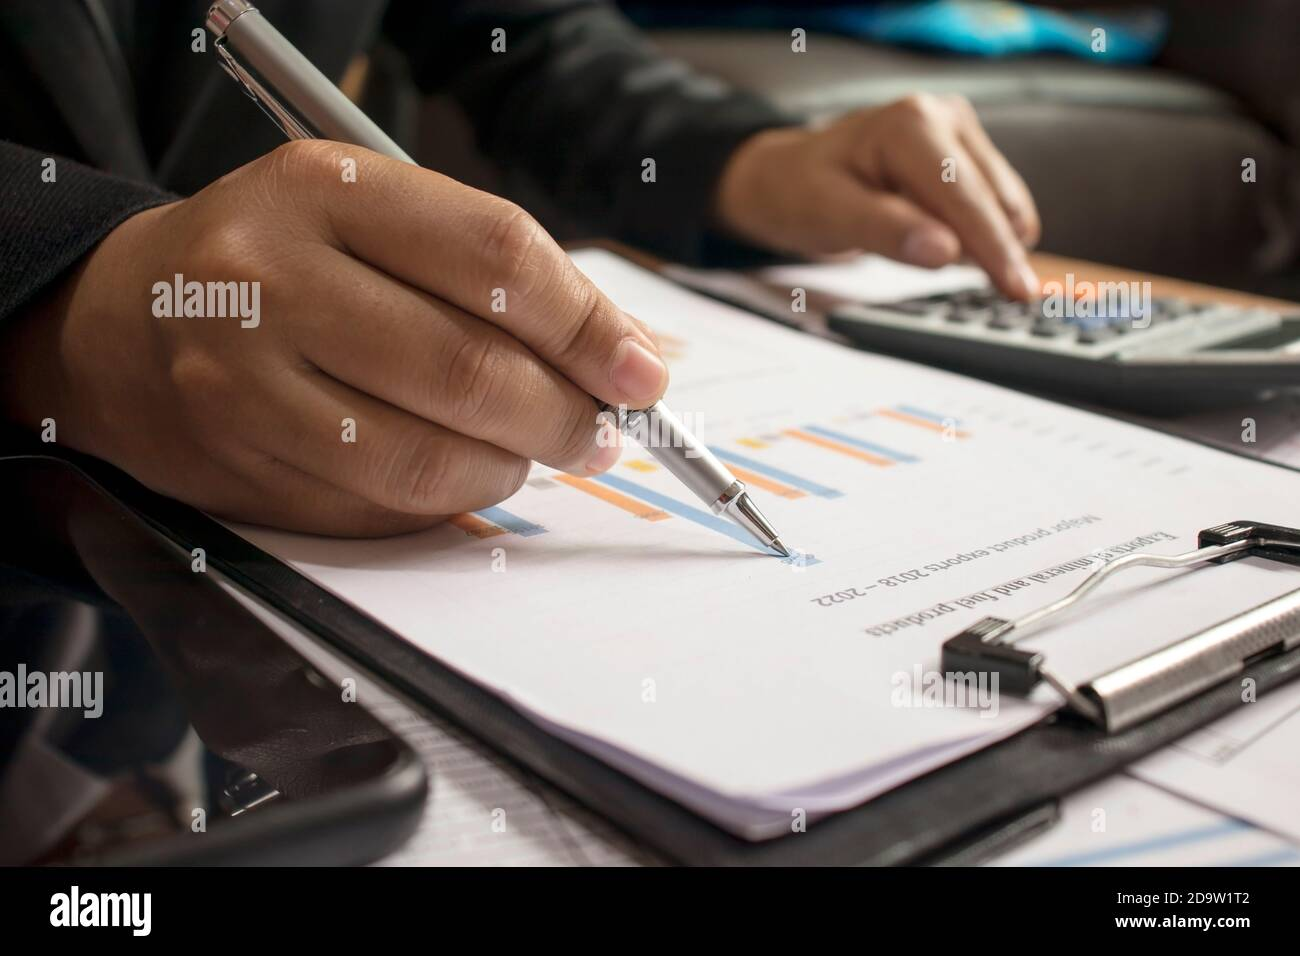 Business people reviewing reports, financial documents for analysis of financial information, work concept. Stock Photo